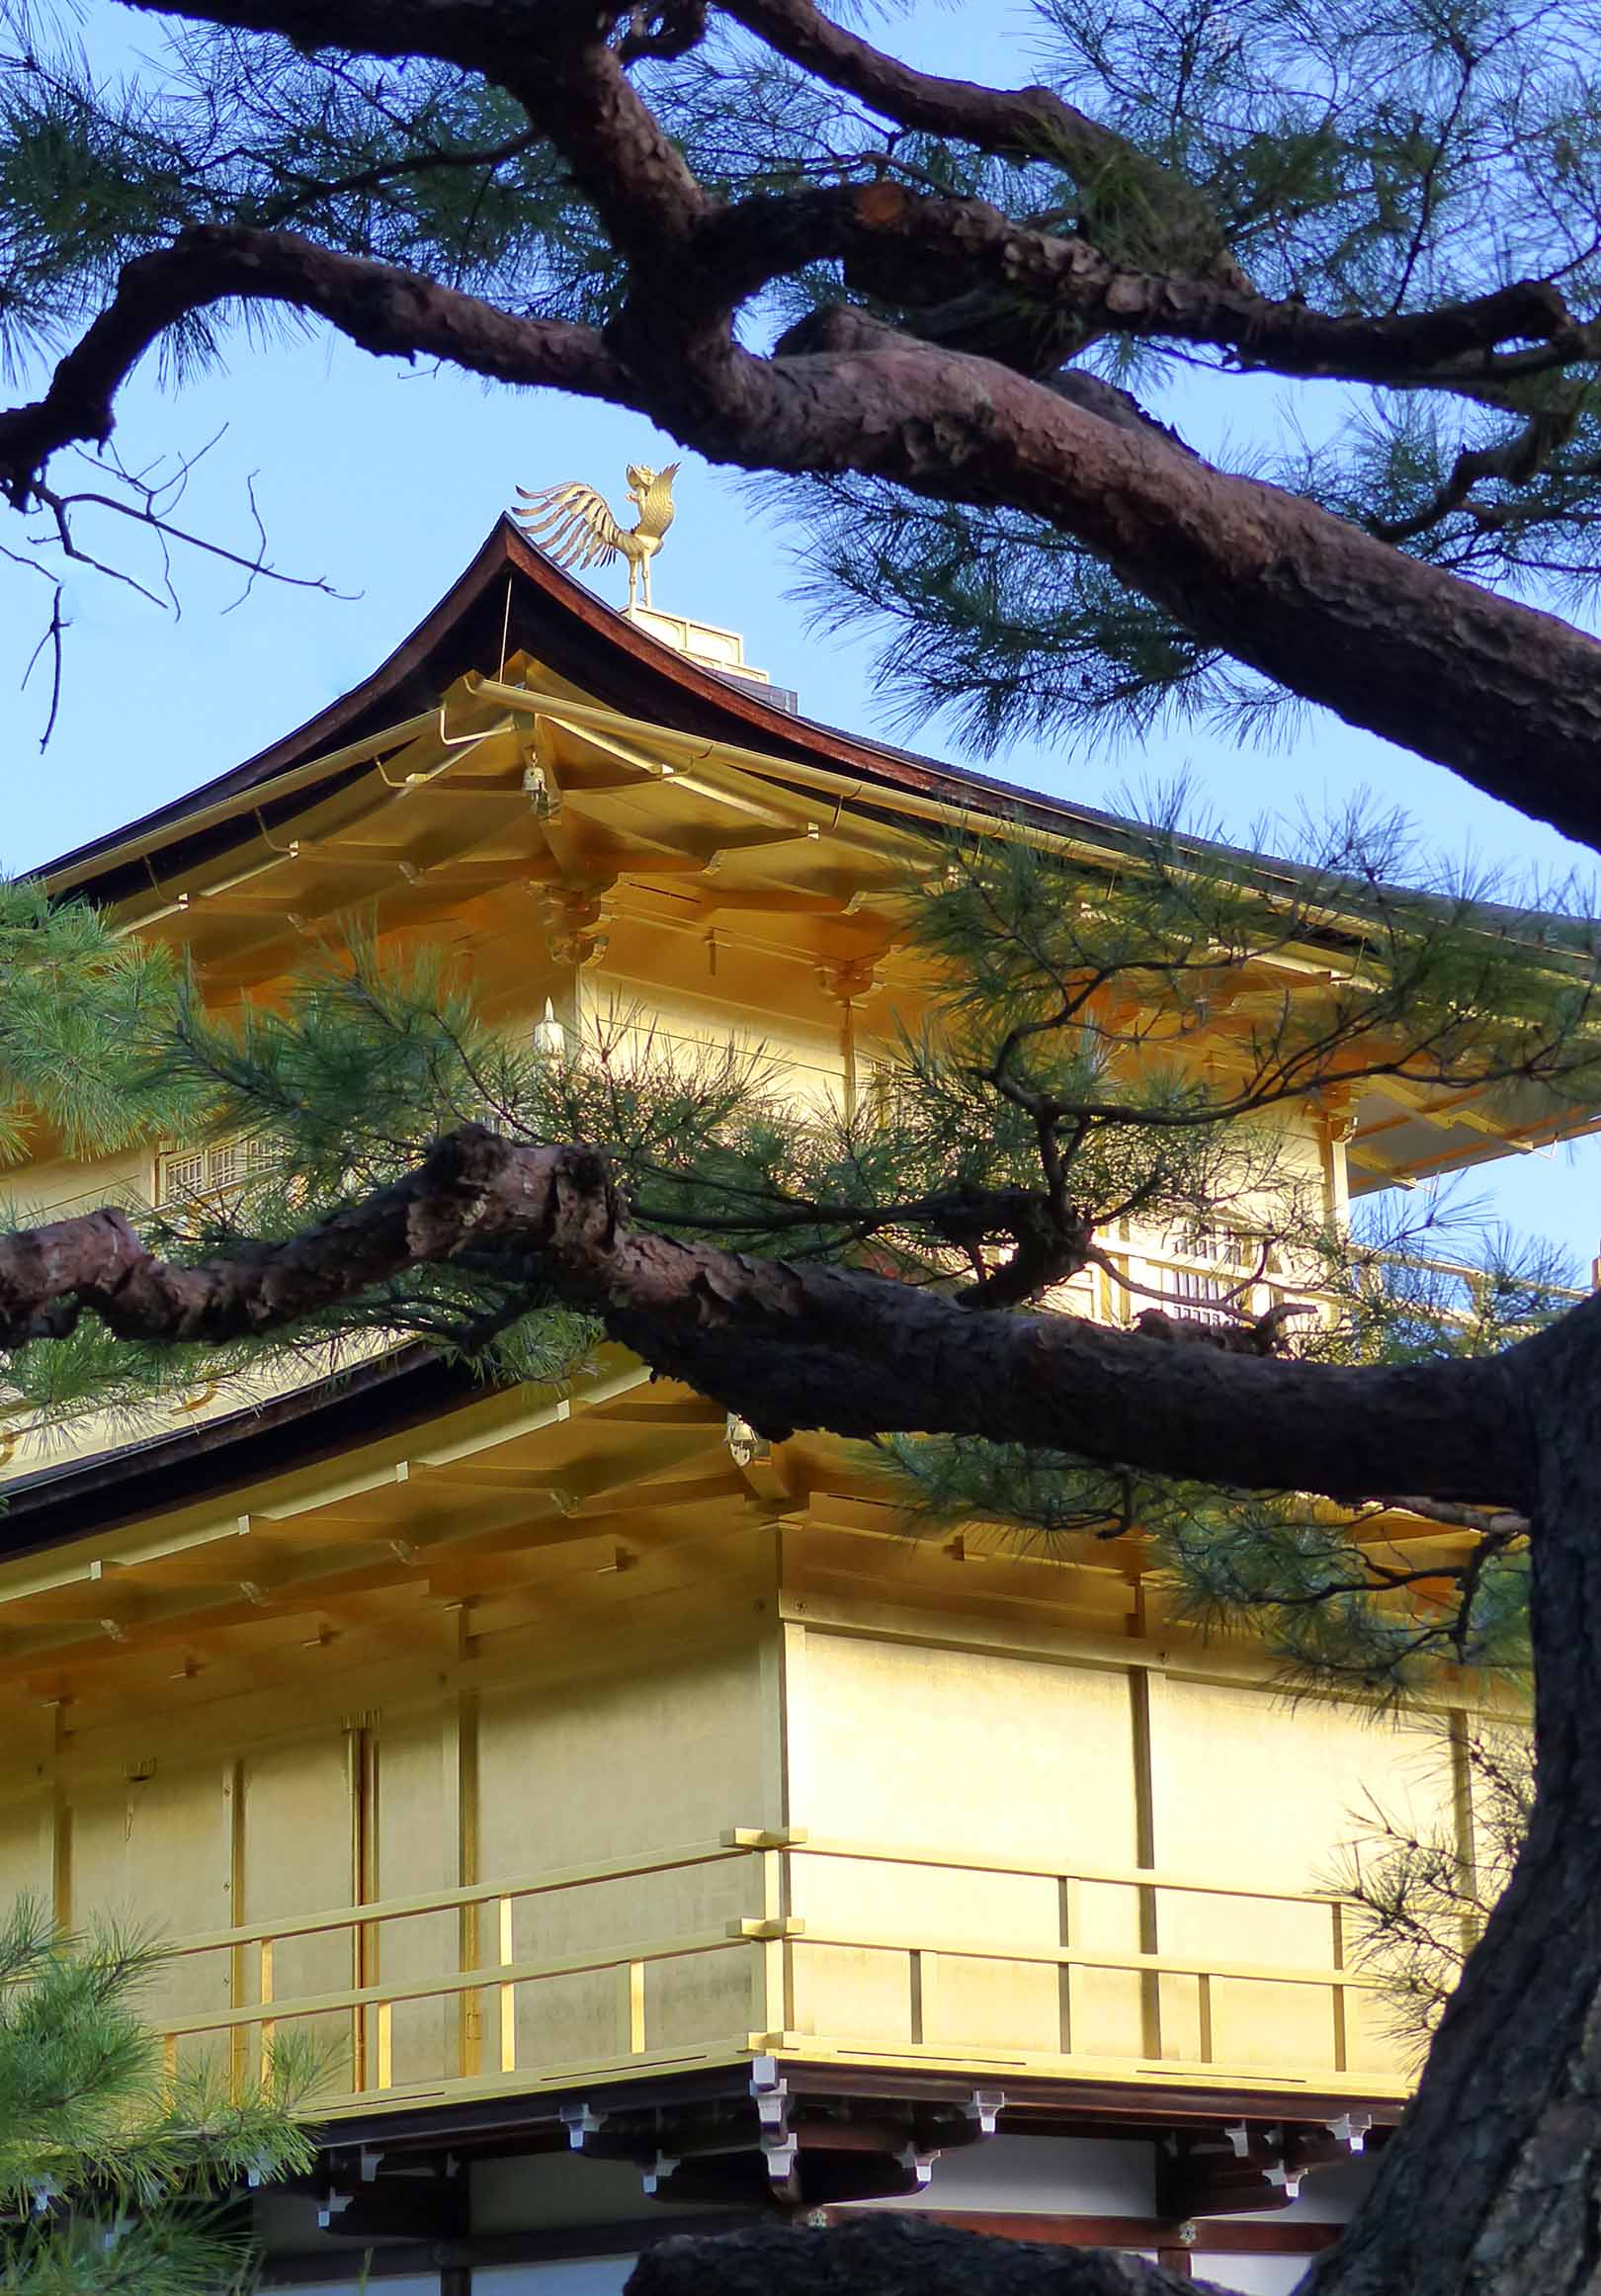 Golden temple and pine tree